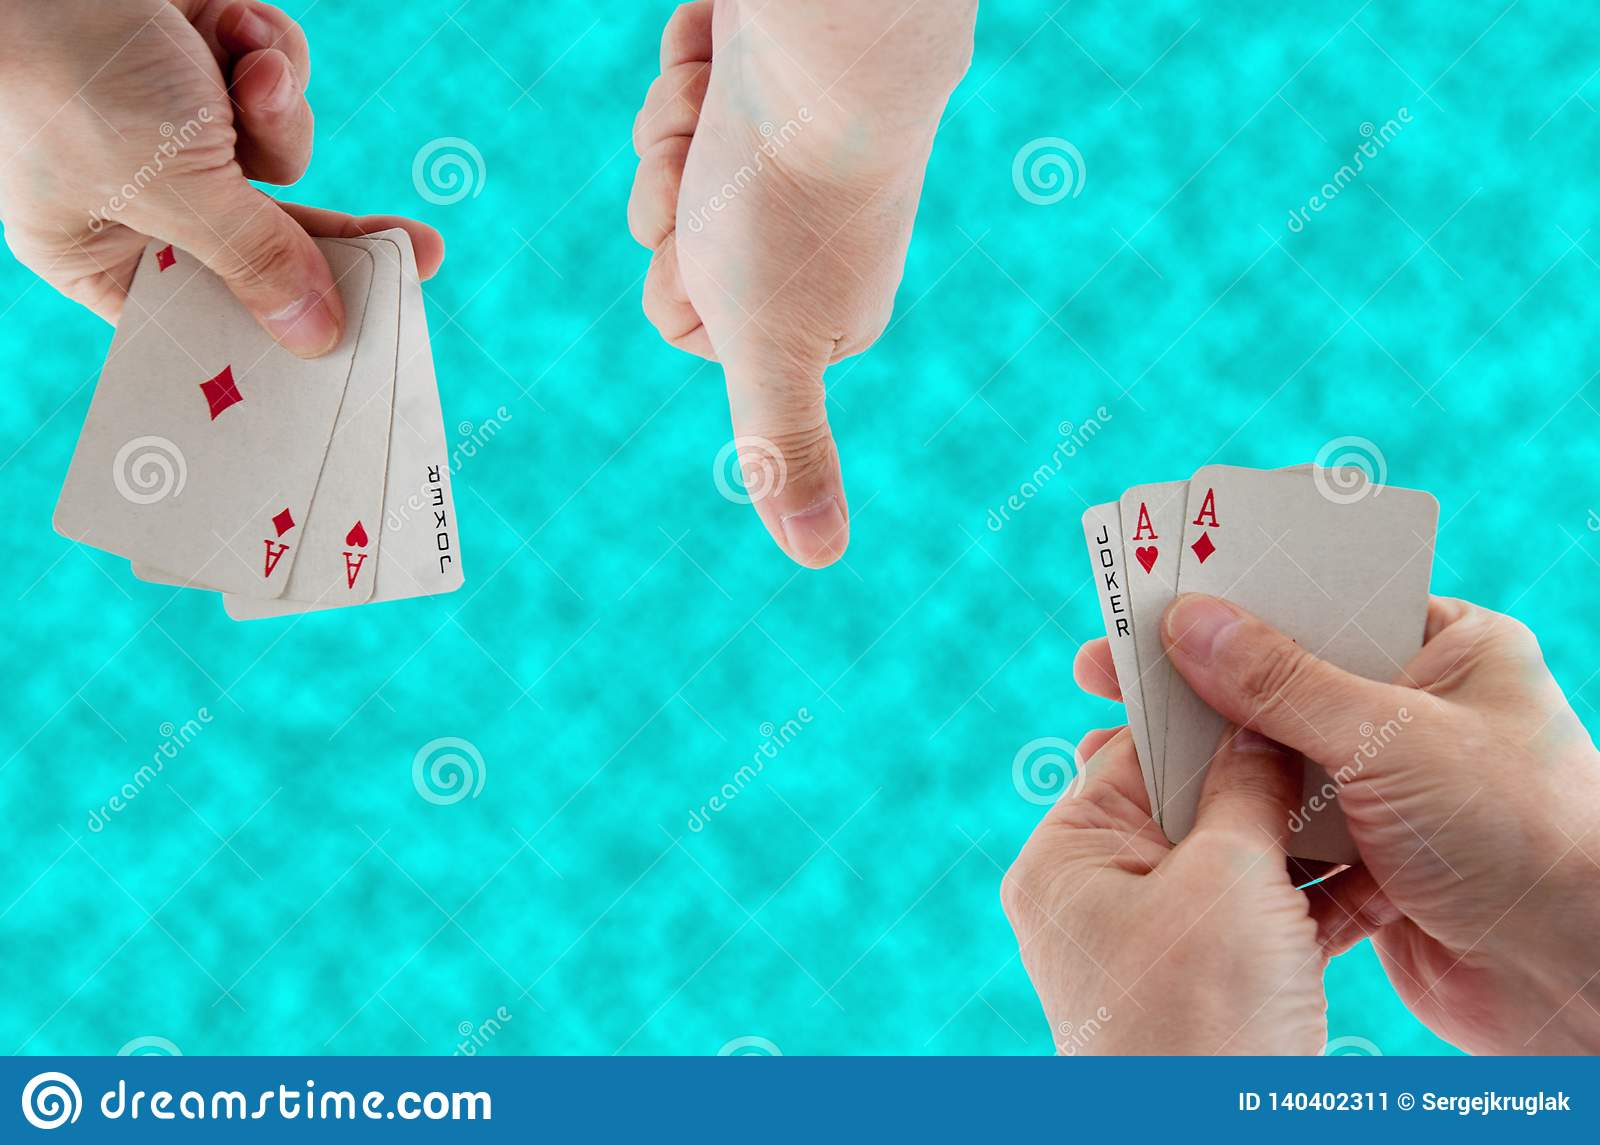 Playing cards in hand on the background of water